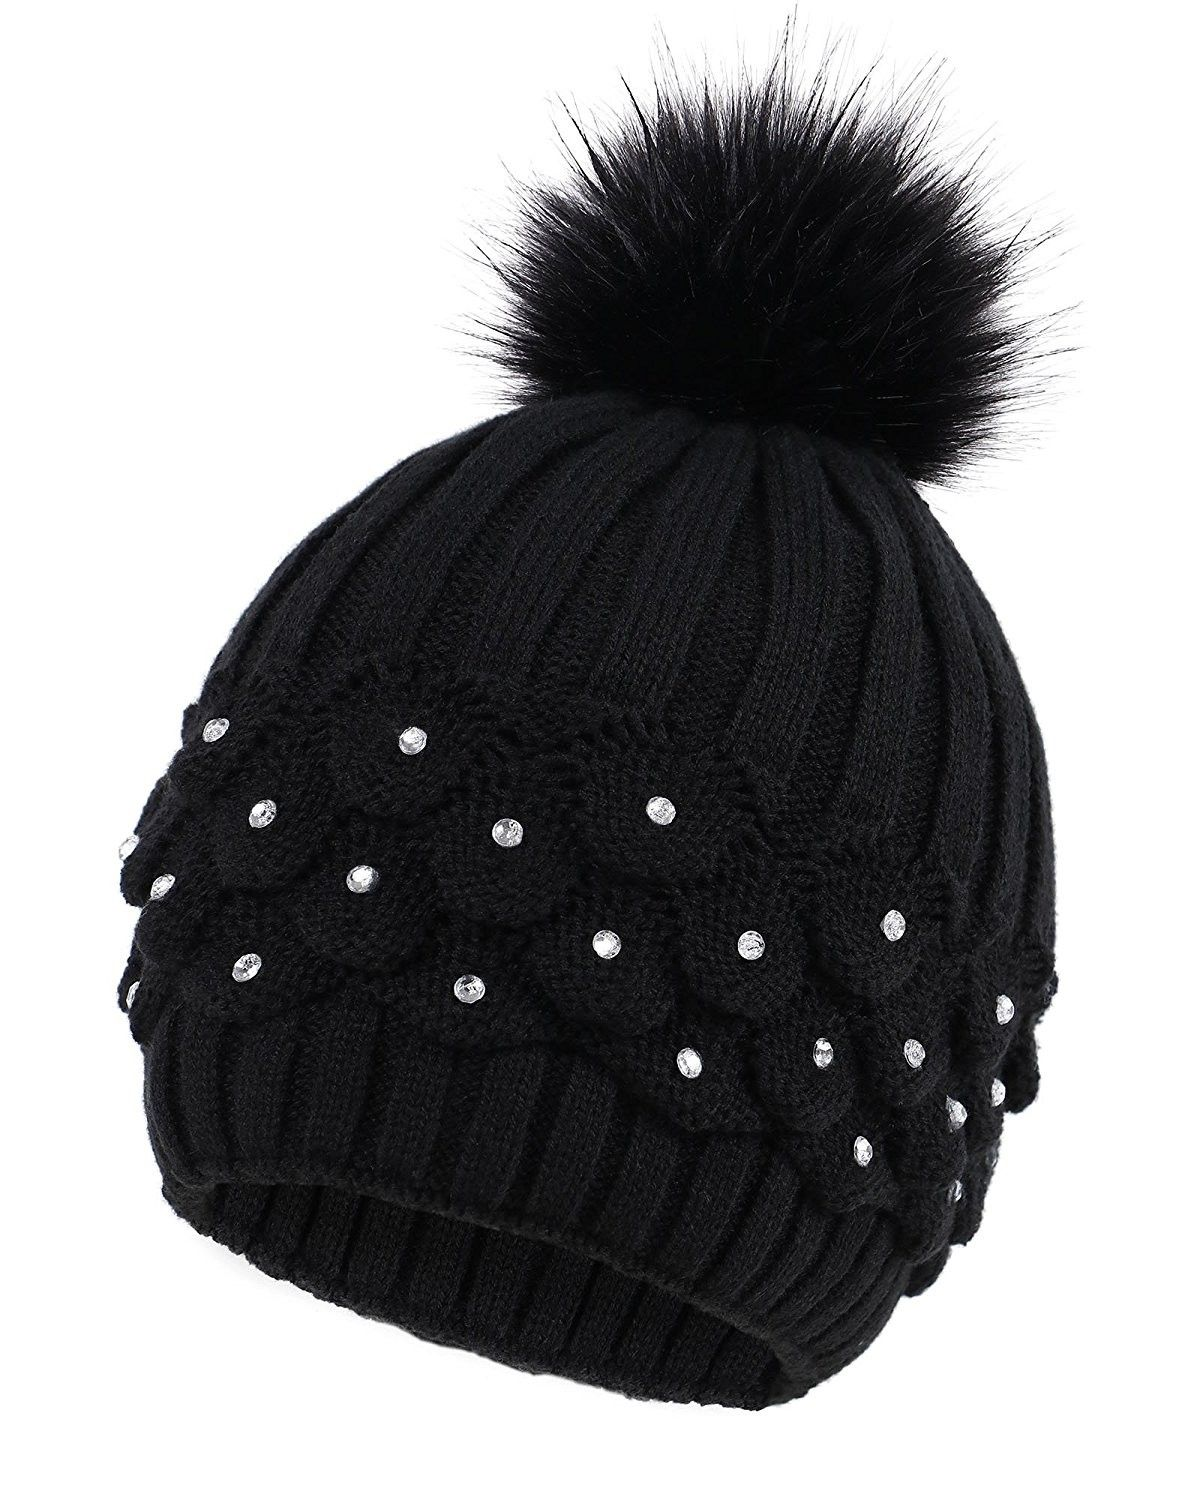 ccab9874e2e Paw Cable Knit Beanie with Sequins and Faux Fur Pompom - Black -  CI185LZO3Y3 - Hats   Caps